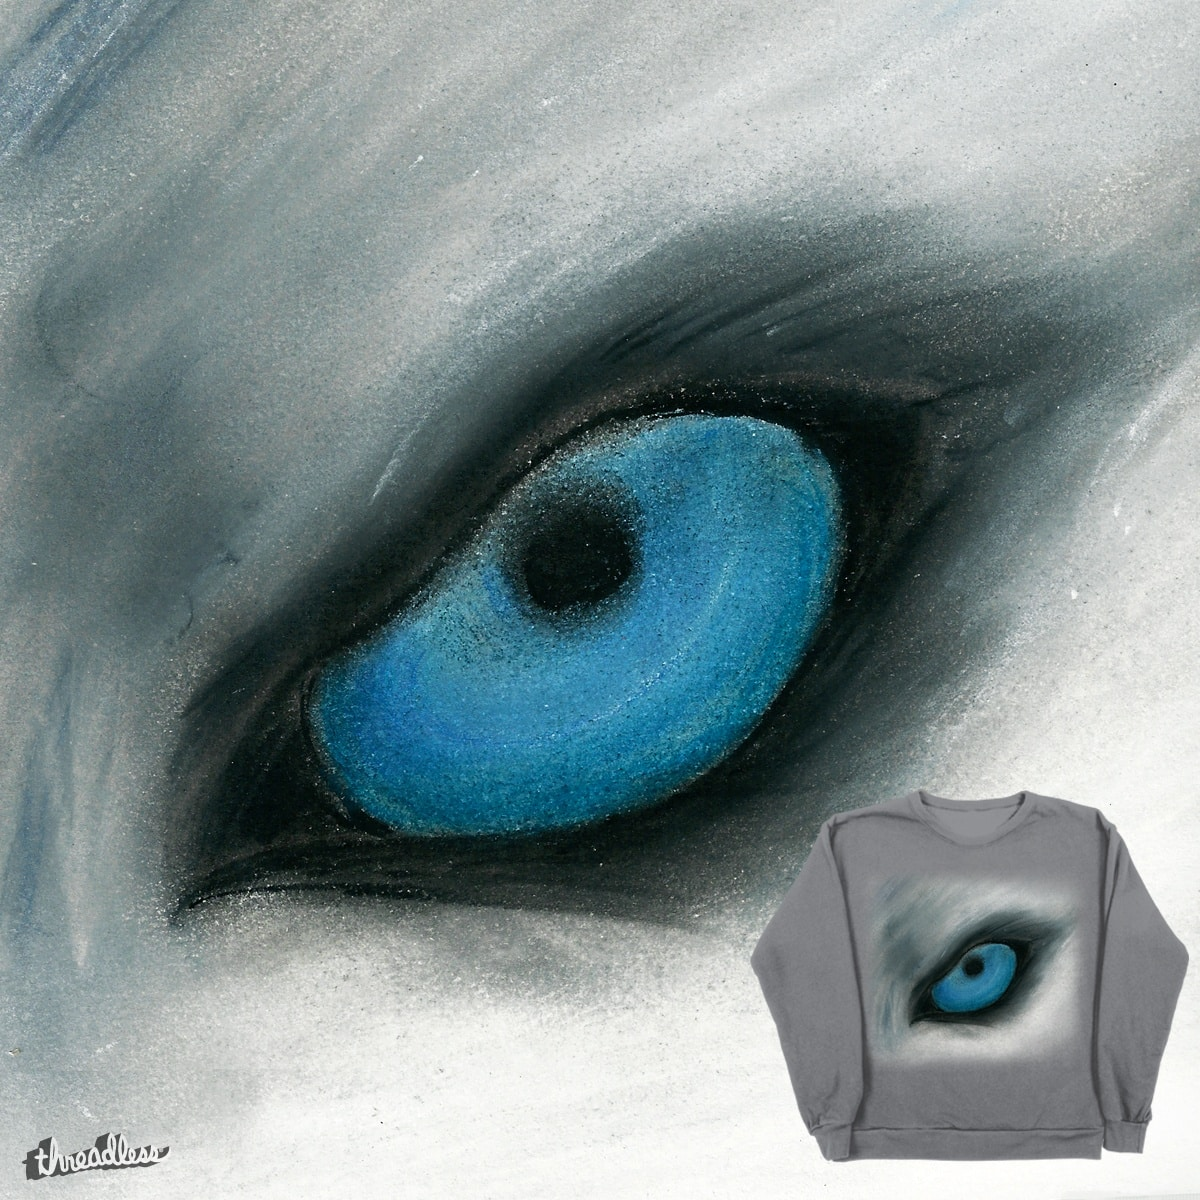 blue husky eye by lune123 on Threadless